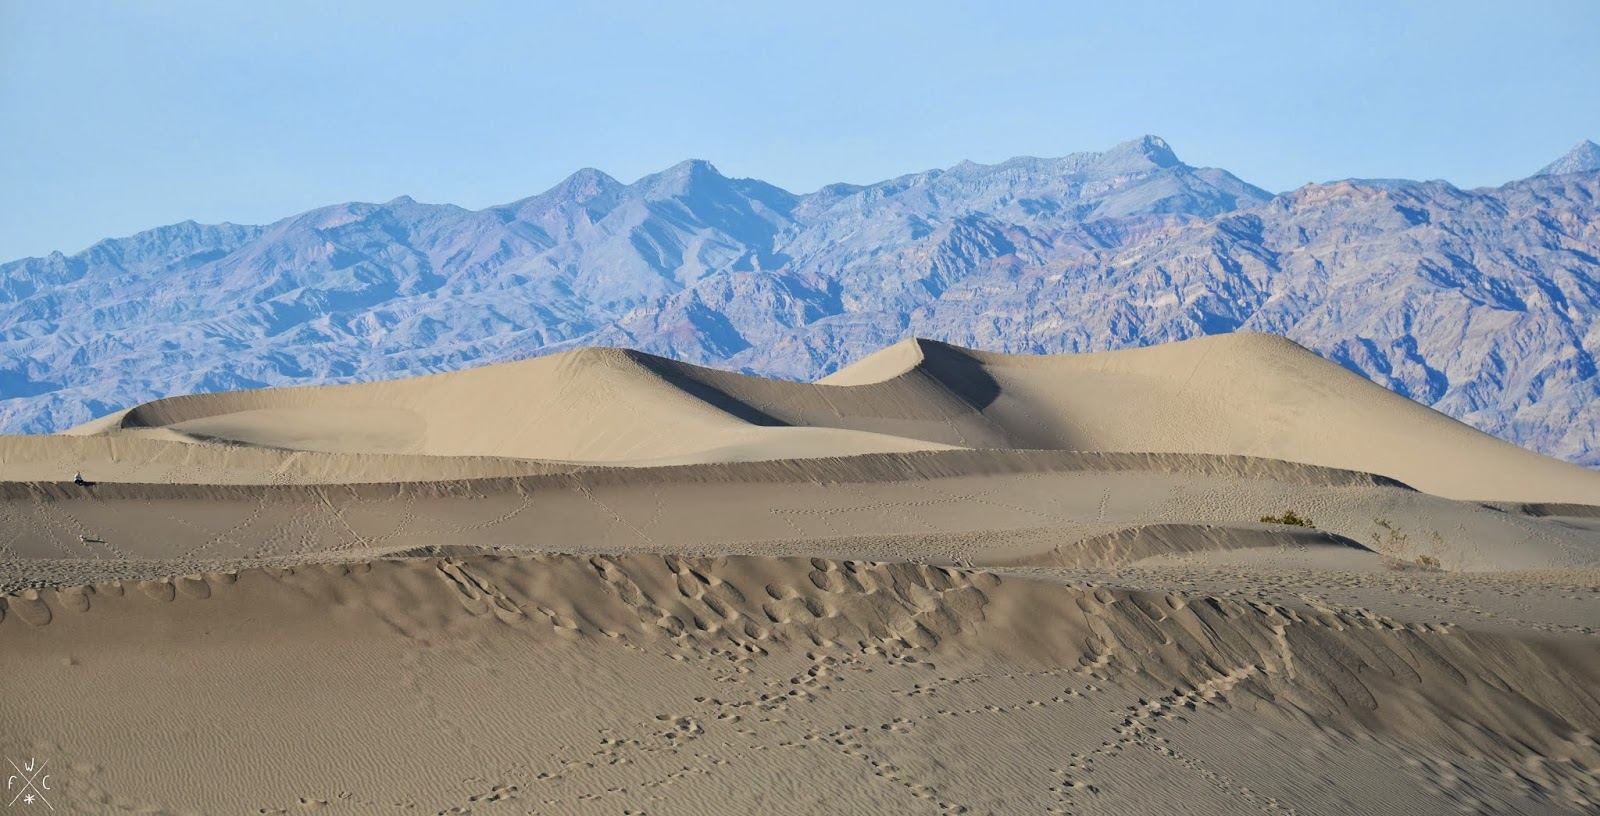 Mesquite Flat Sand Dunes, Death Valley National Park, Californie, USA